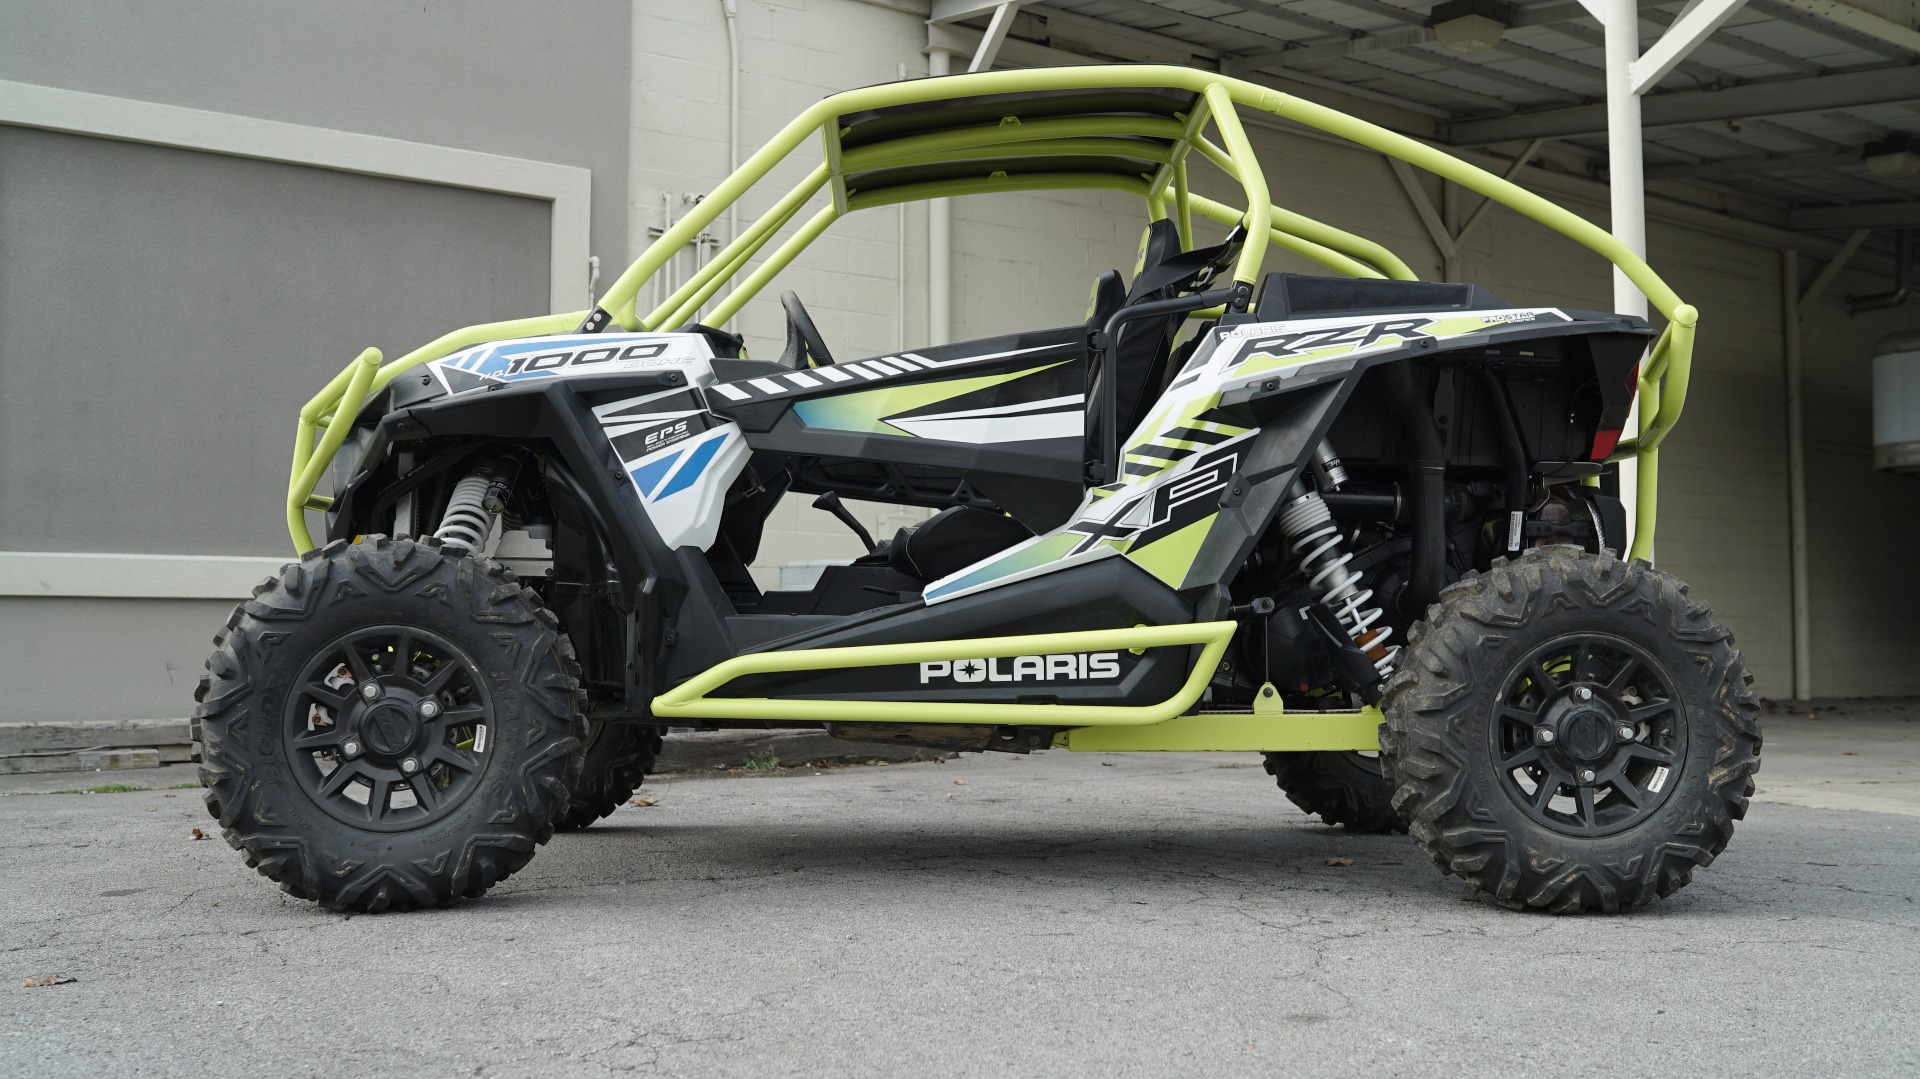 Polaris RZR 1000 with Yellow Roll Cage Image 3